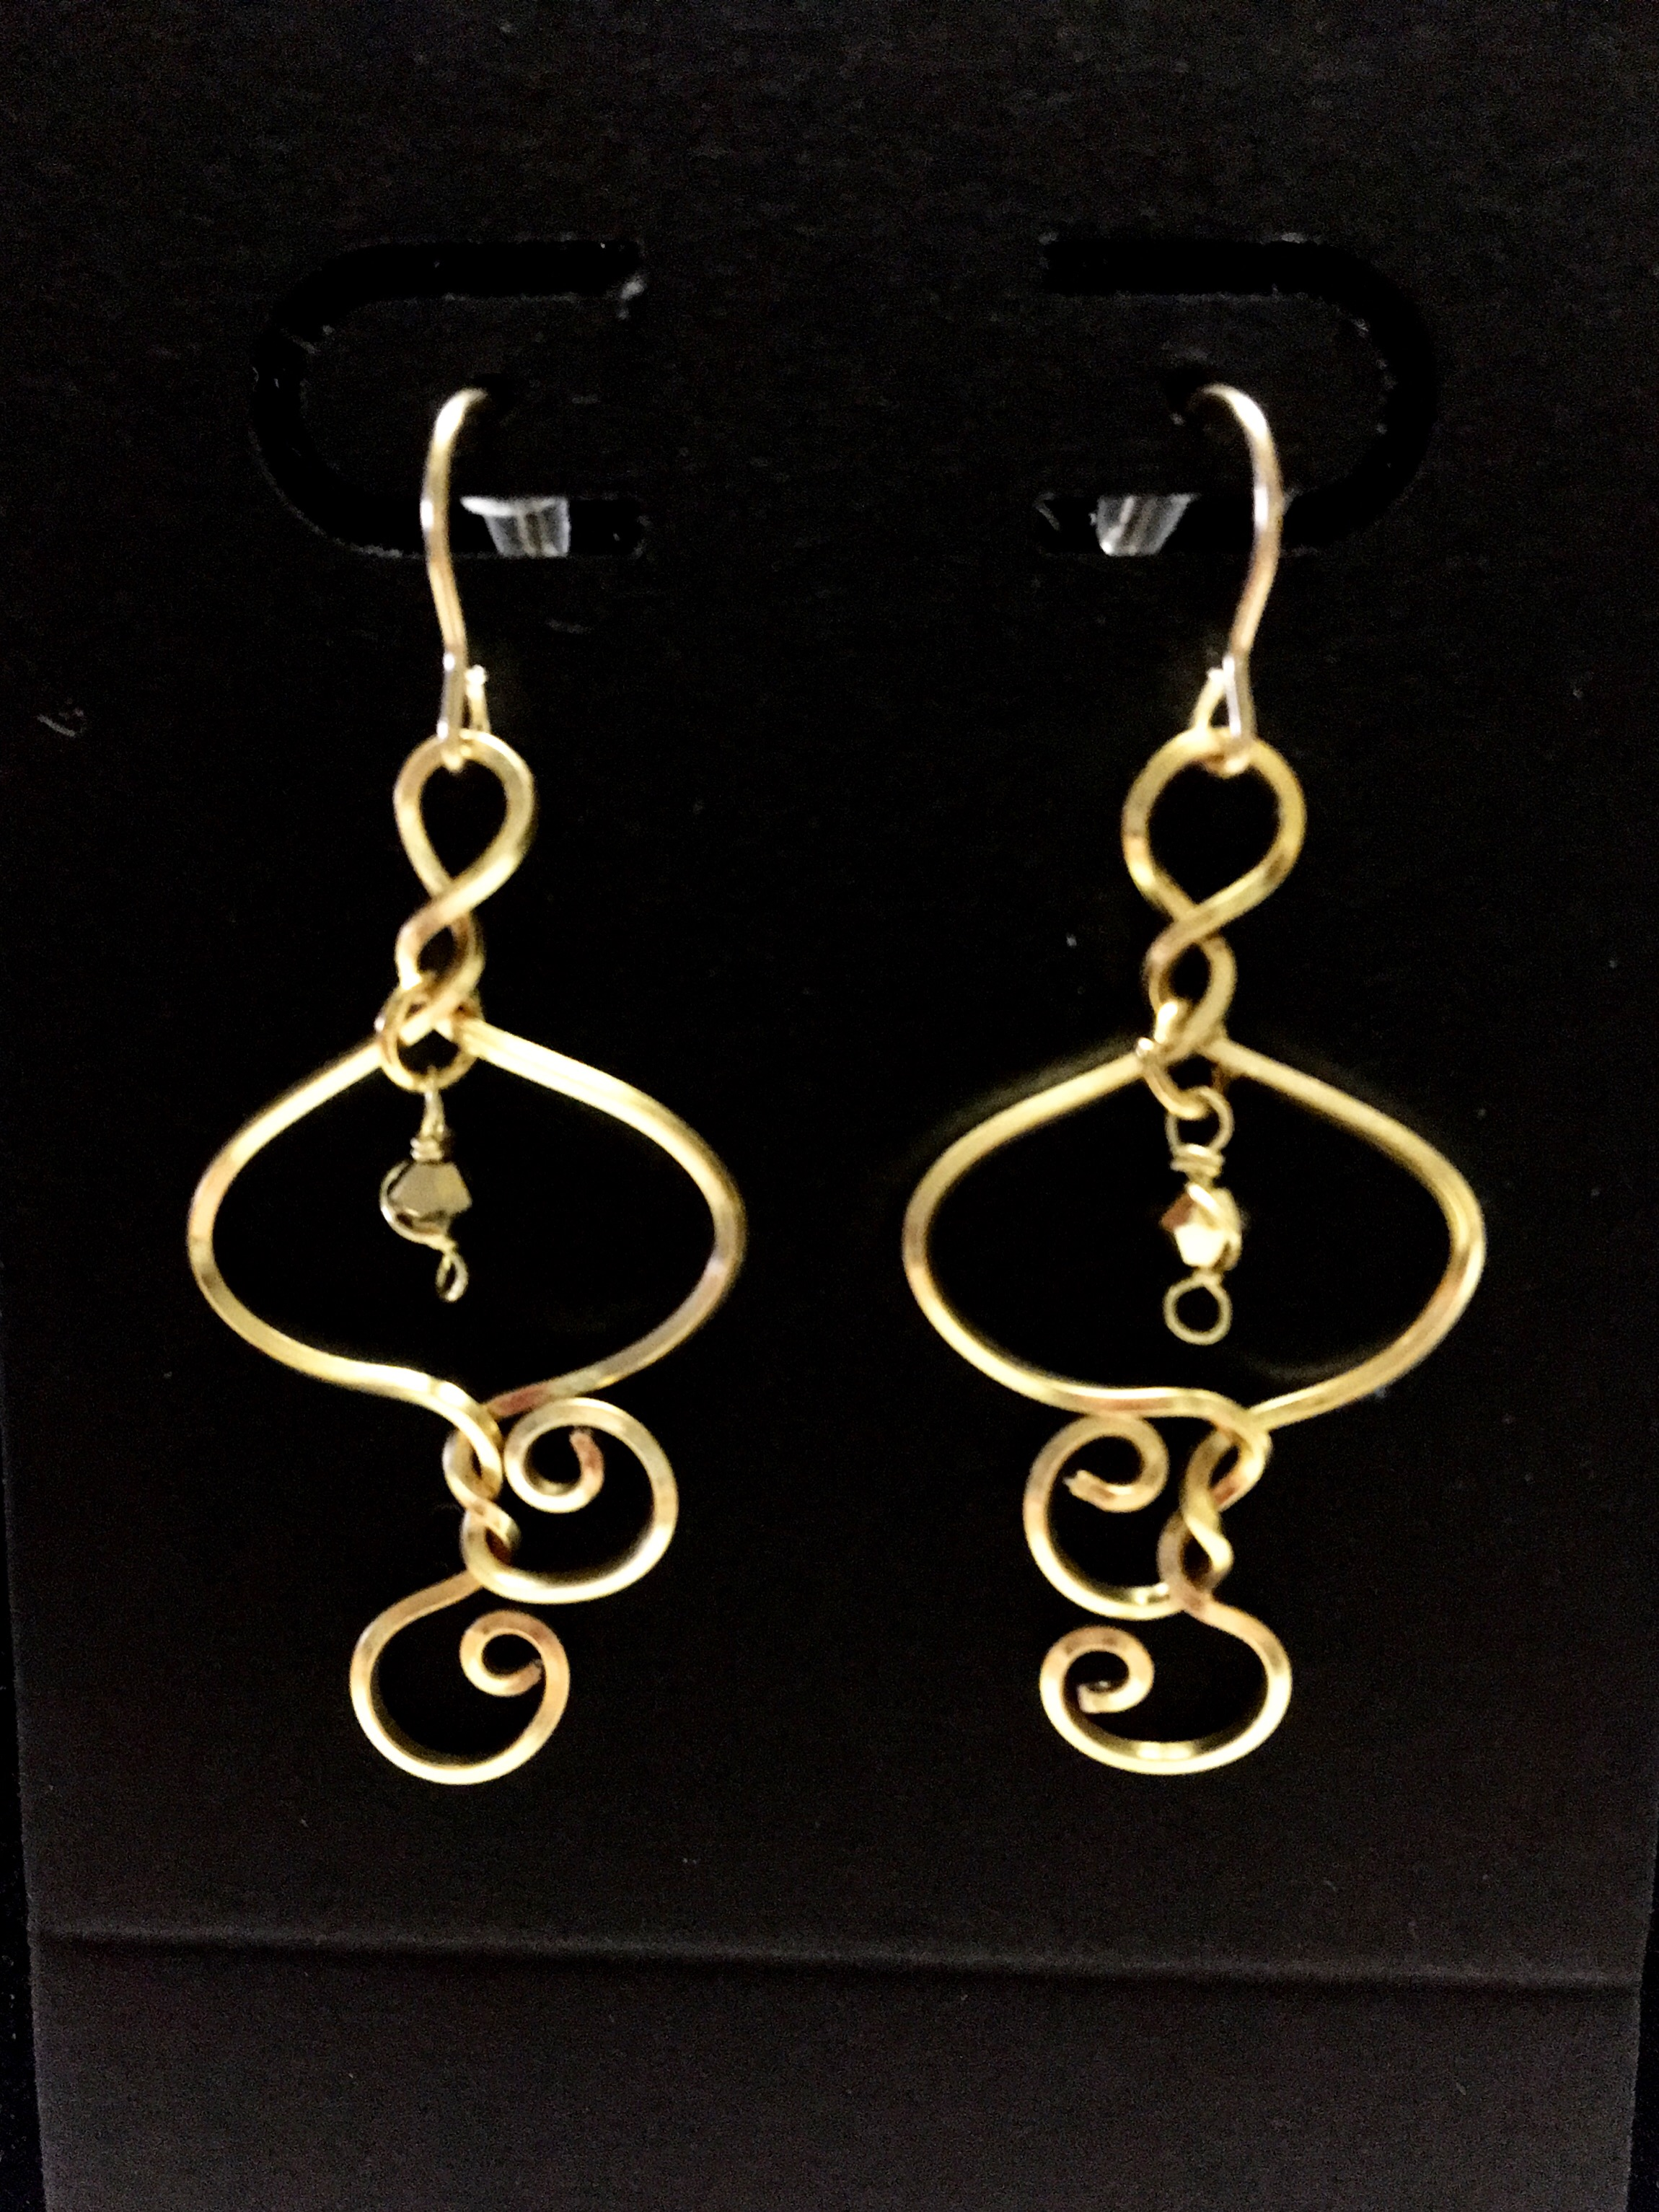 Candid Claire Earrings - Silver plated gold color - goldfilled hooks